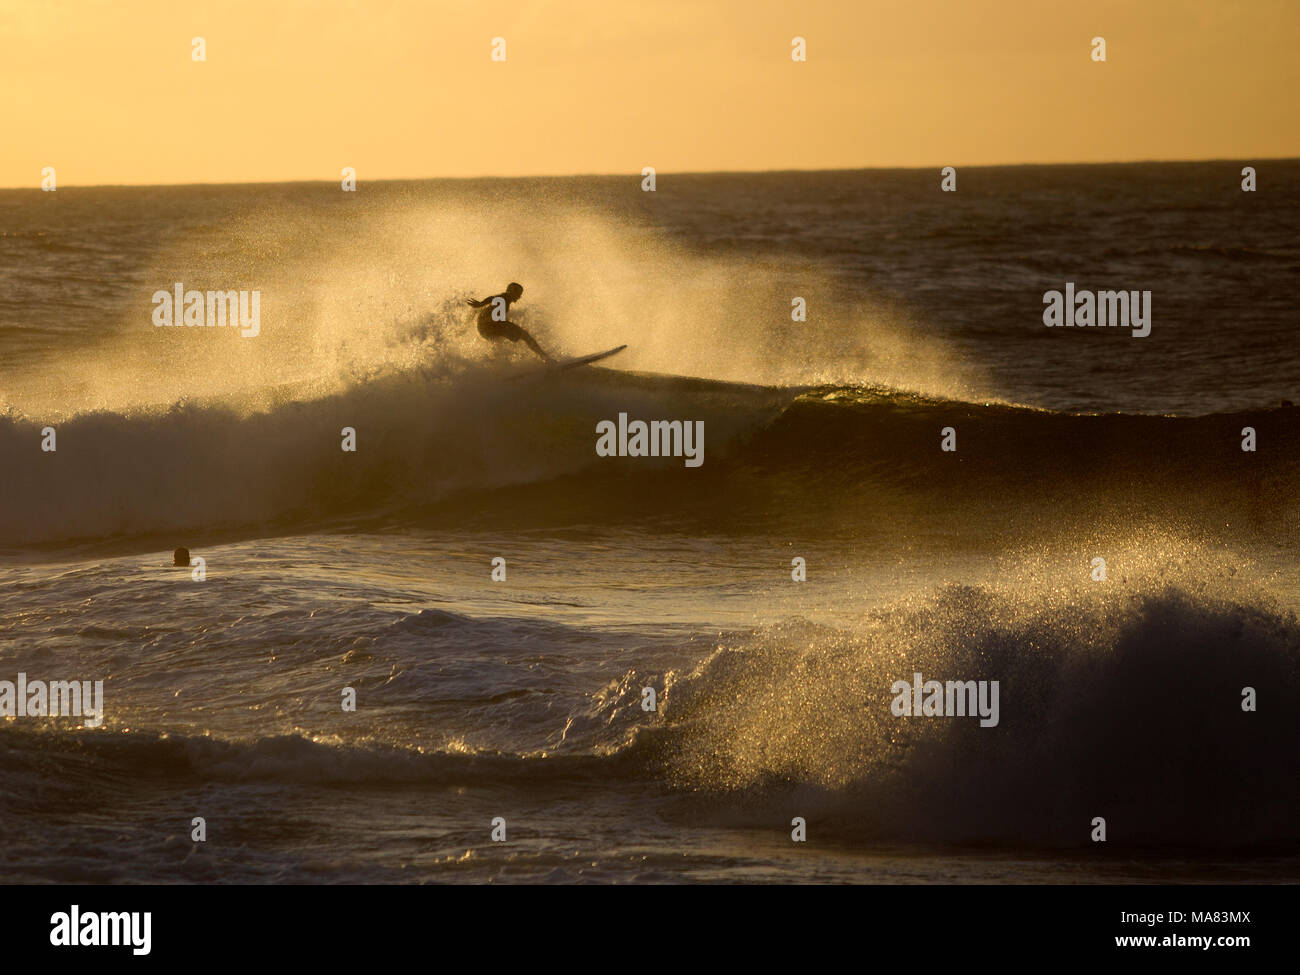 Surfing at Pipeline, North shore of Oahu - Stock Image